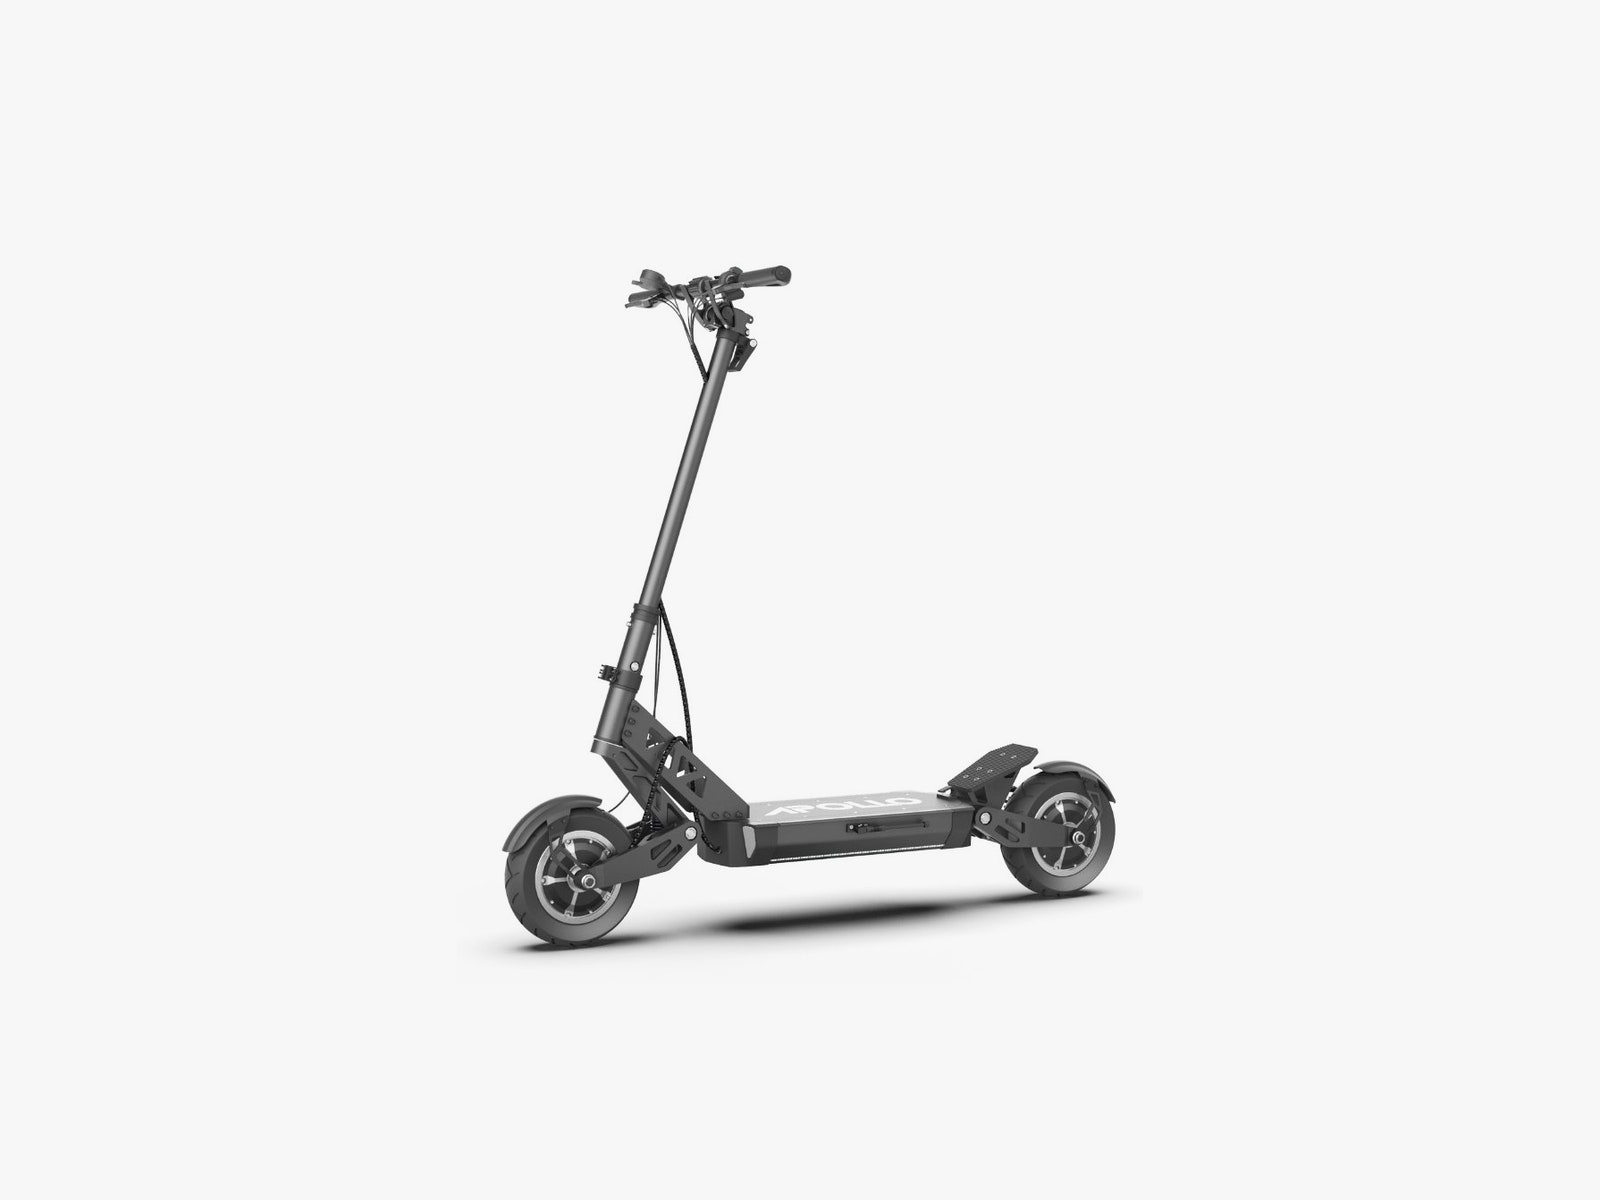 Image may contain Transportation Vehicle Scooter Tool